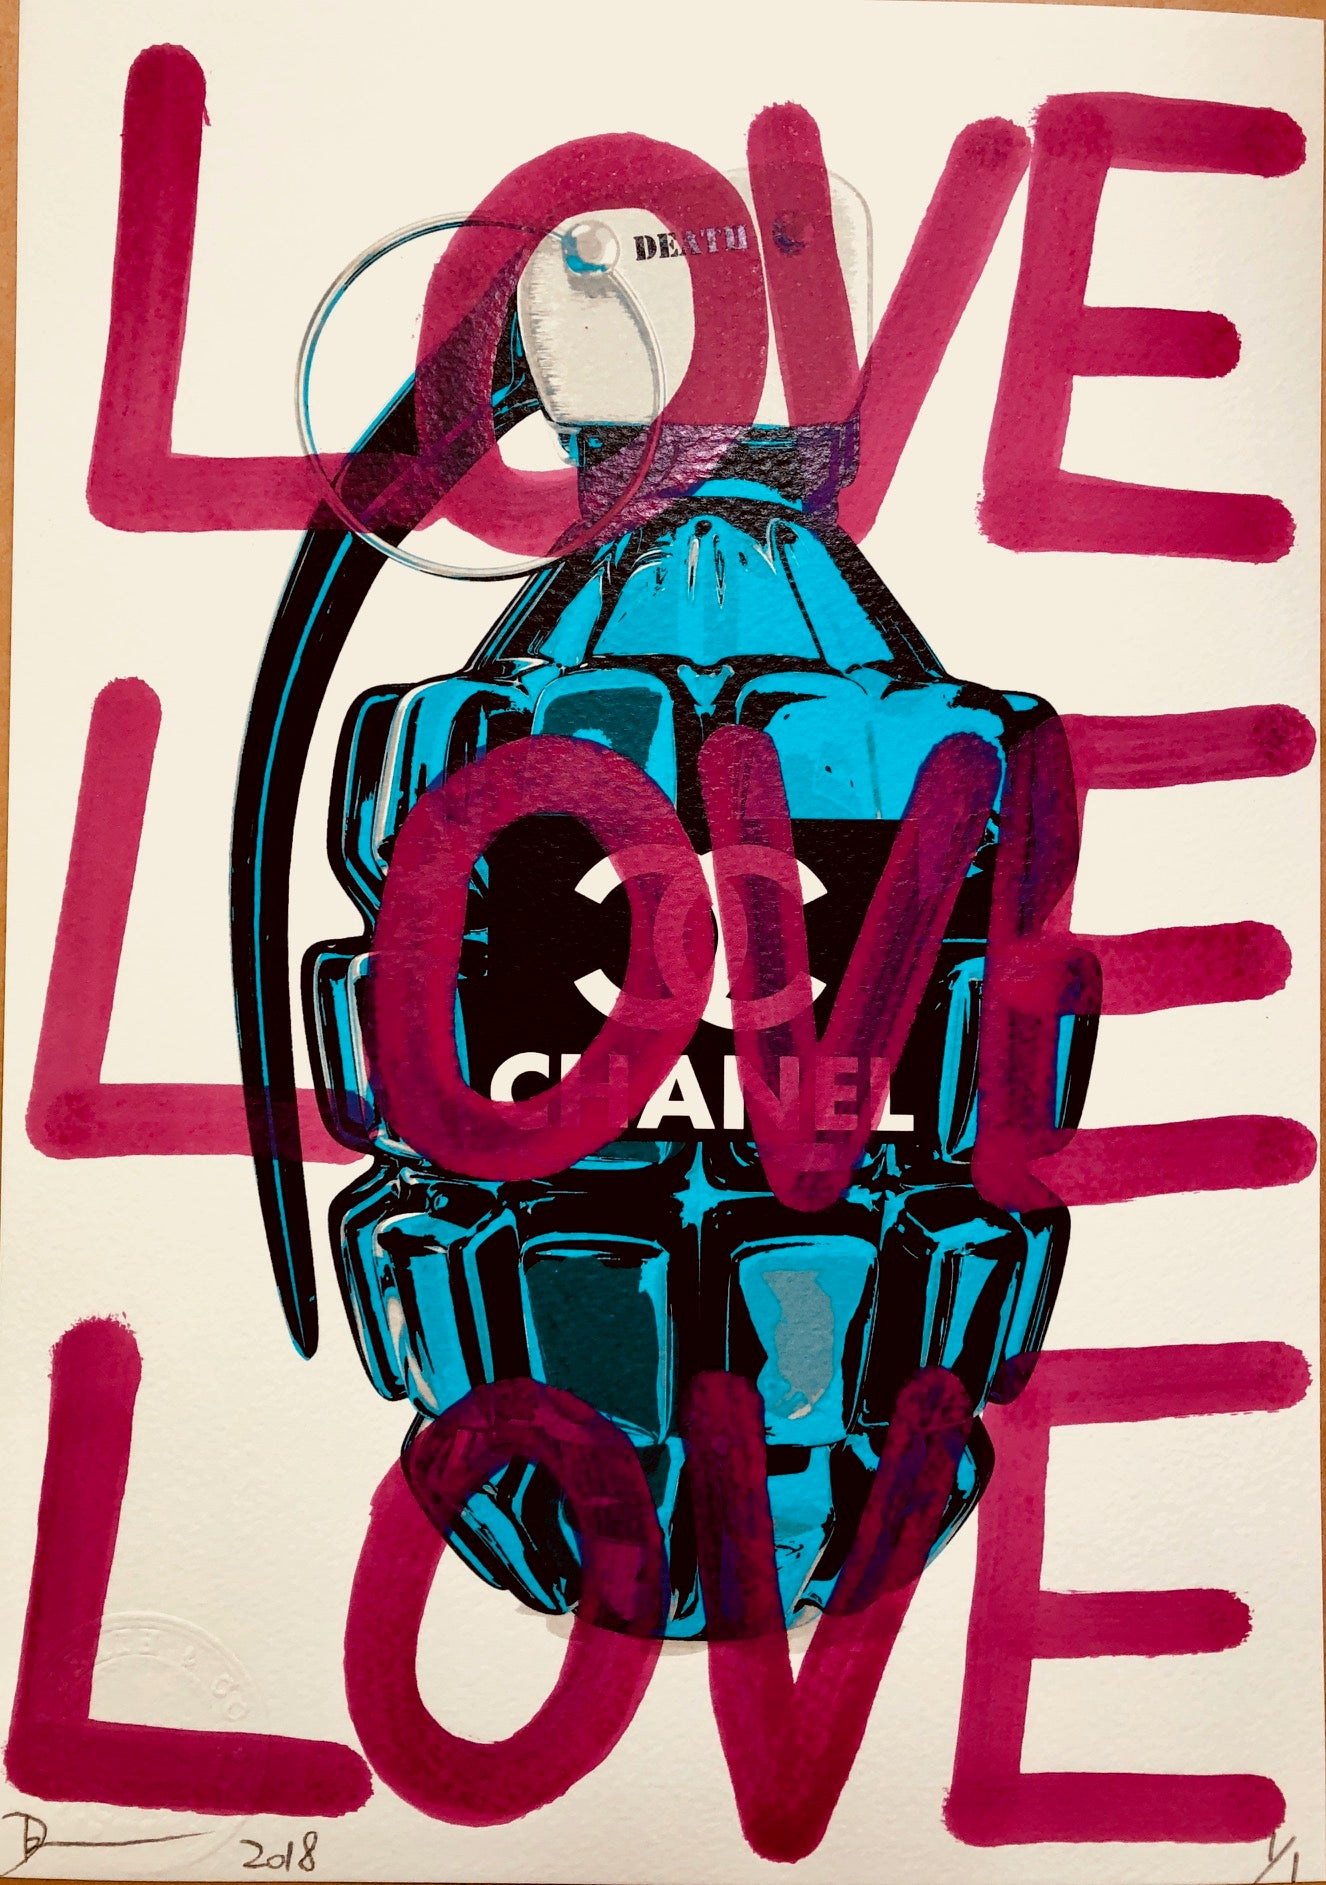 LOVE CC Bomb 29x21cm (Edition of 1)